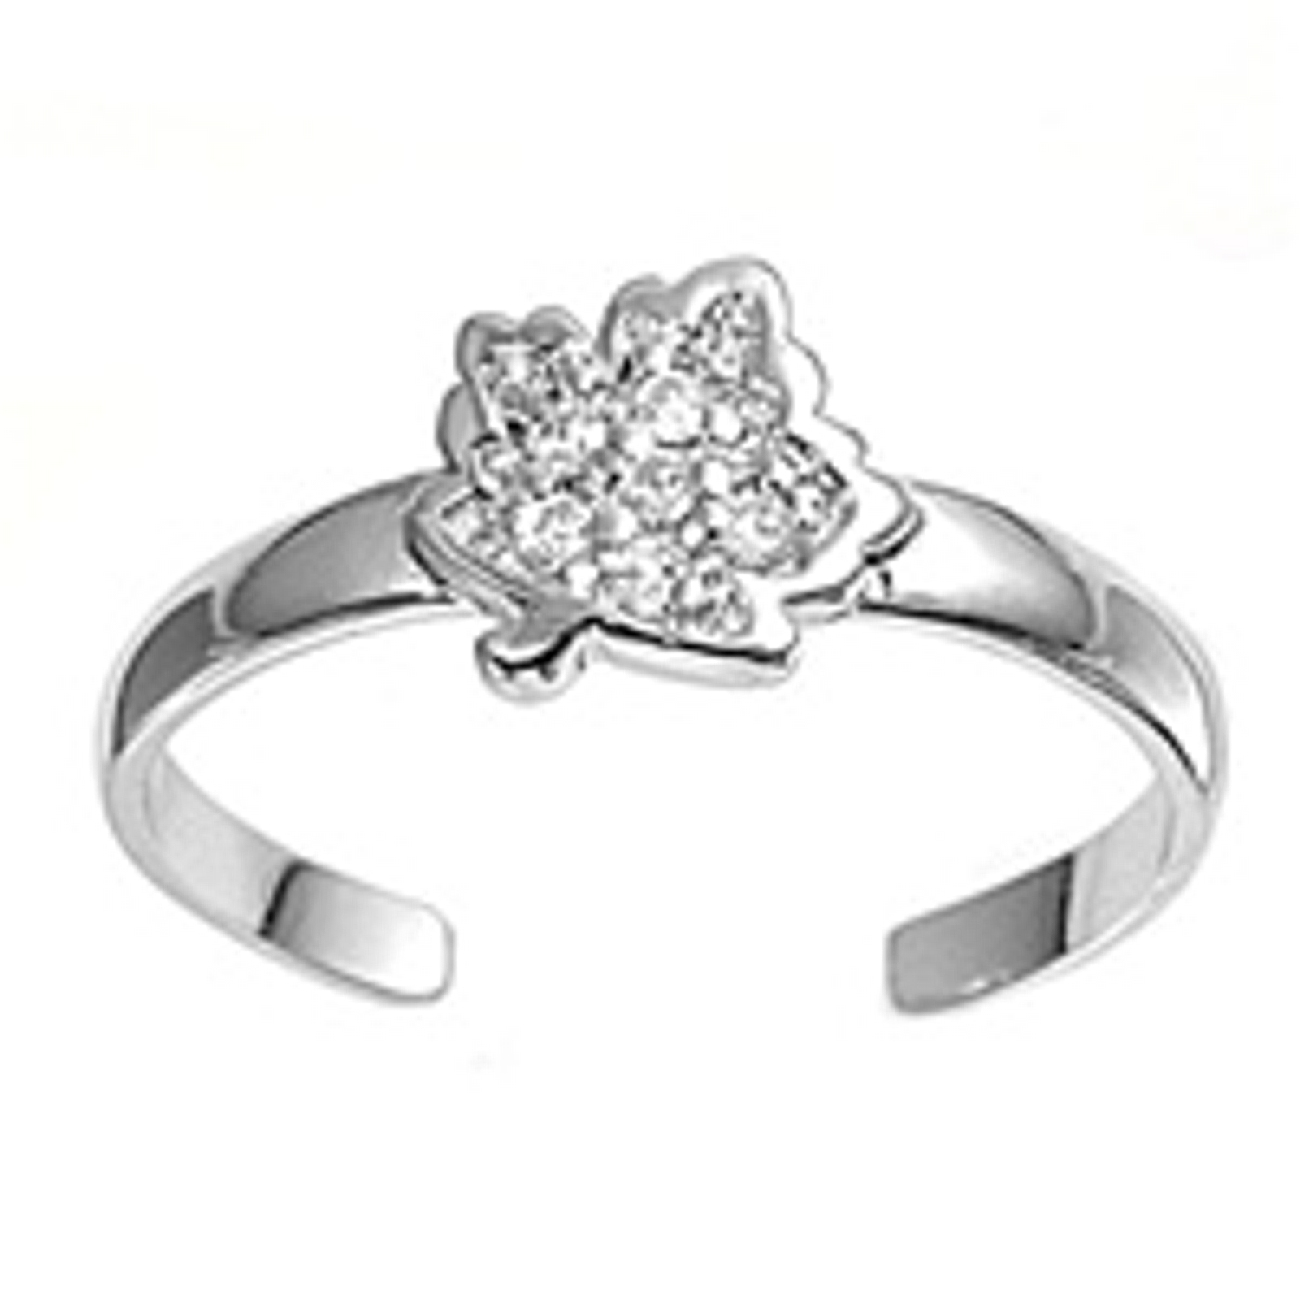 Clear Cubic Zirconia Leaf Adjustable Toe Ring